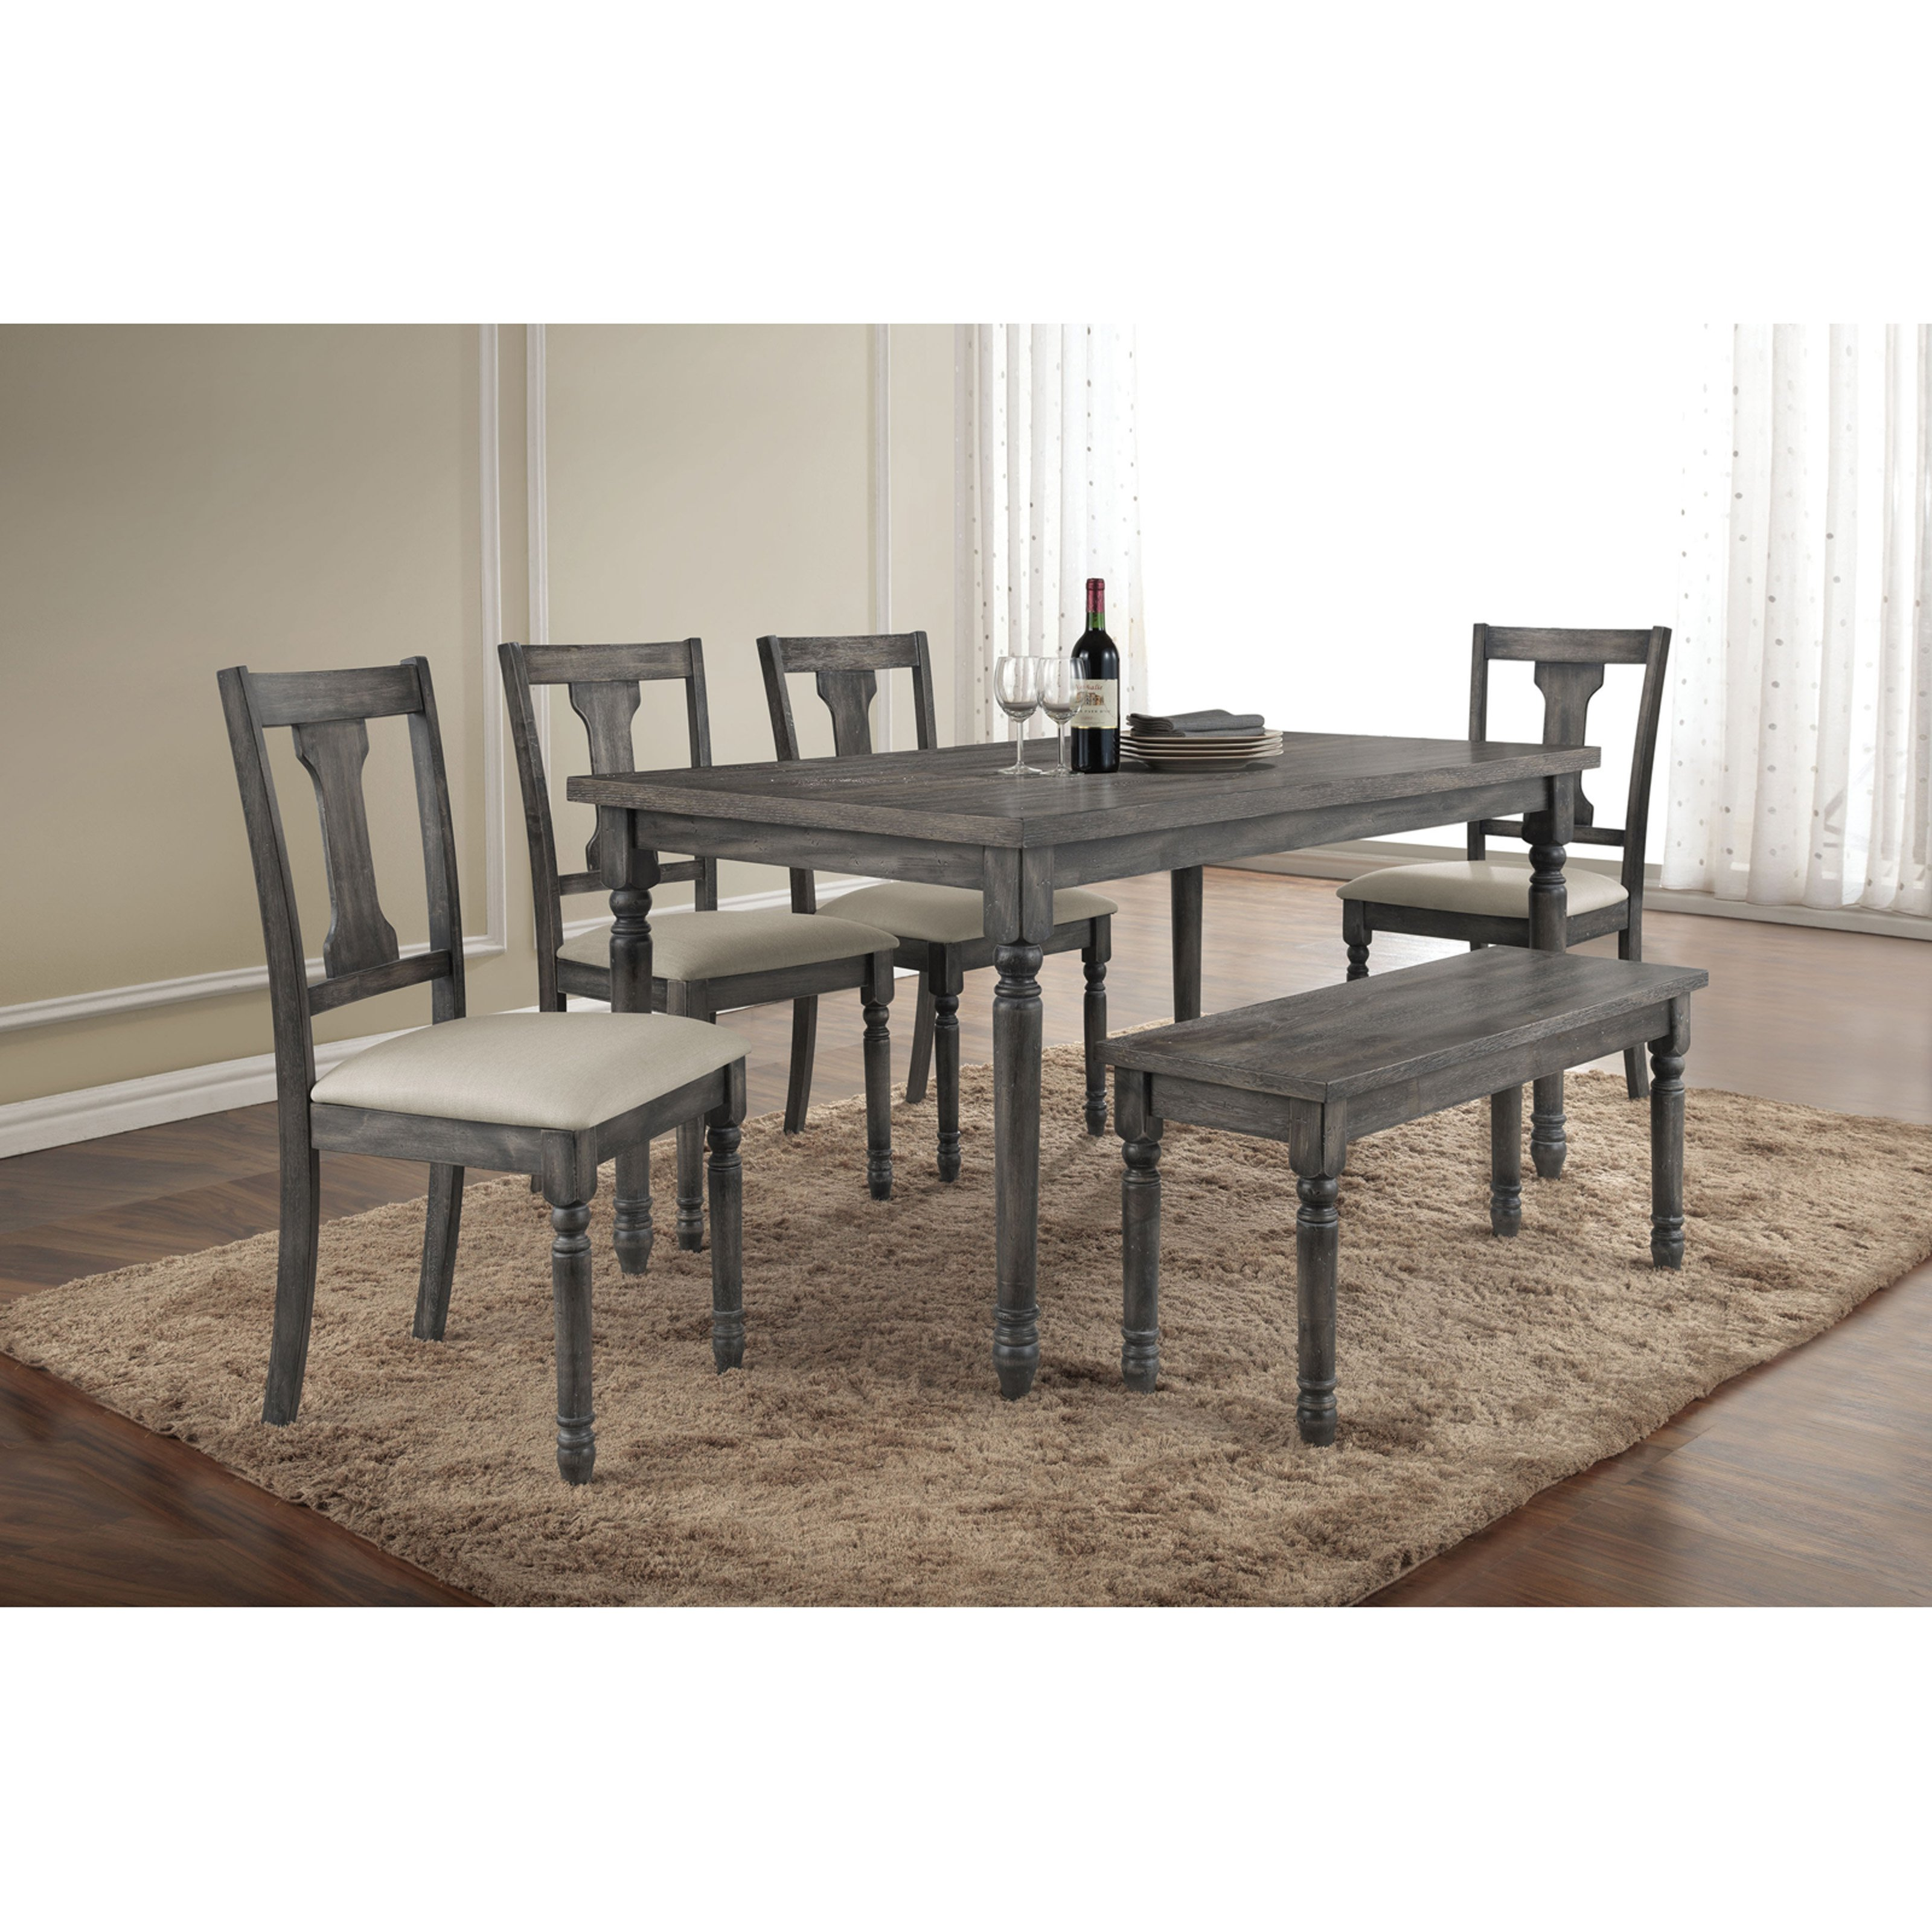 ACME Wallace Dining Table, Weathered Blue Washed by